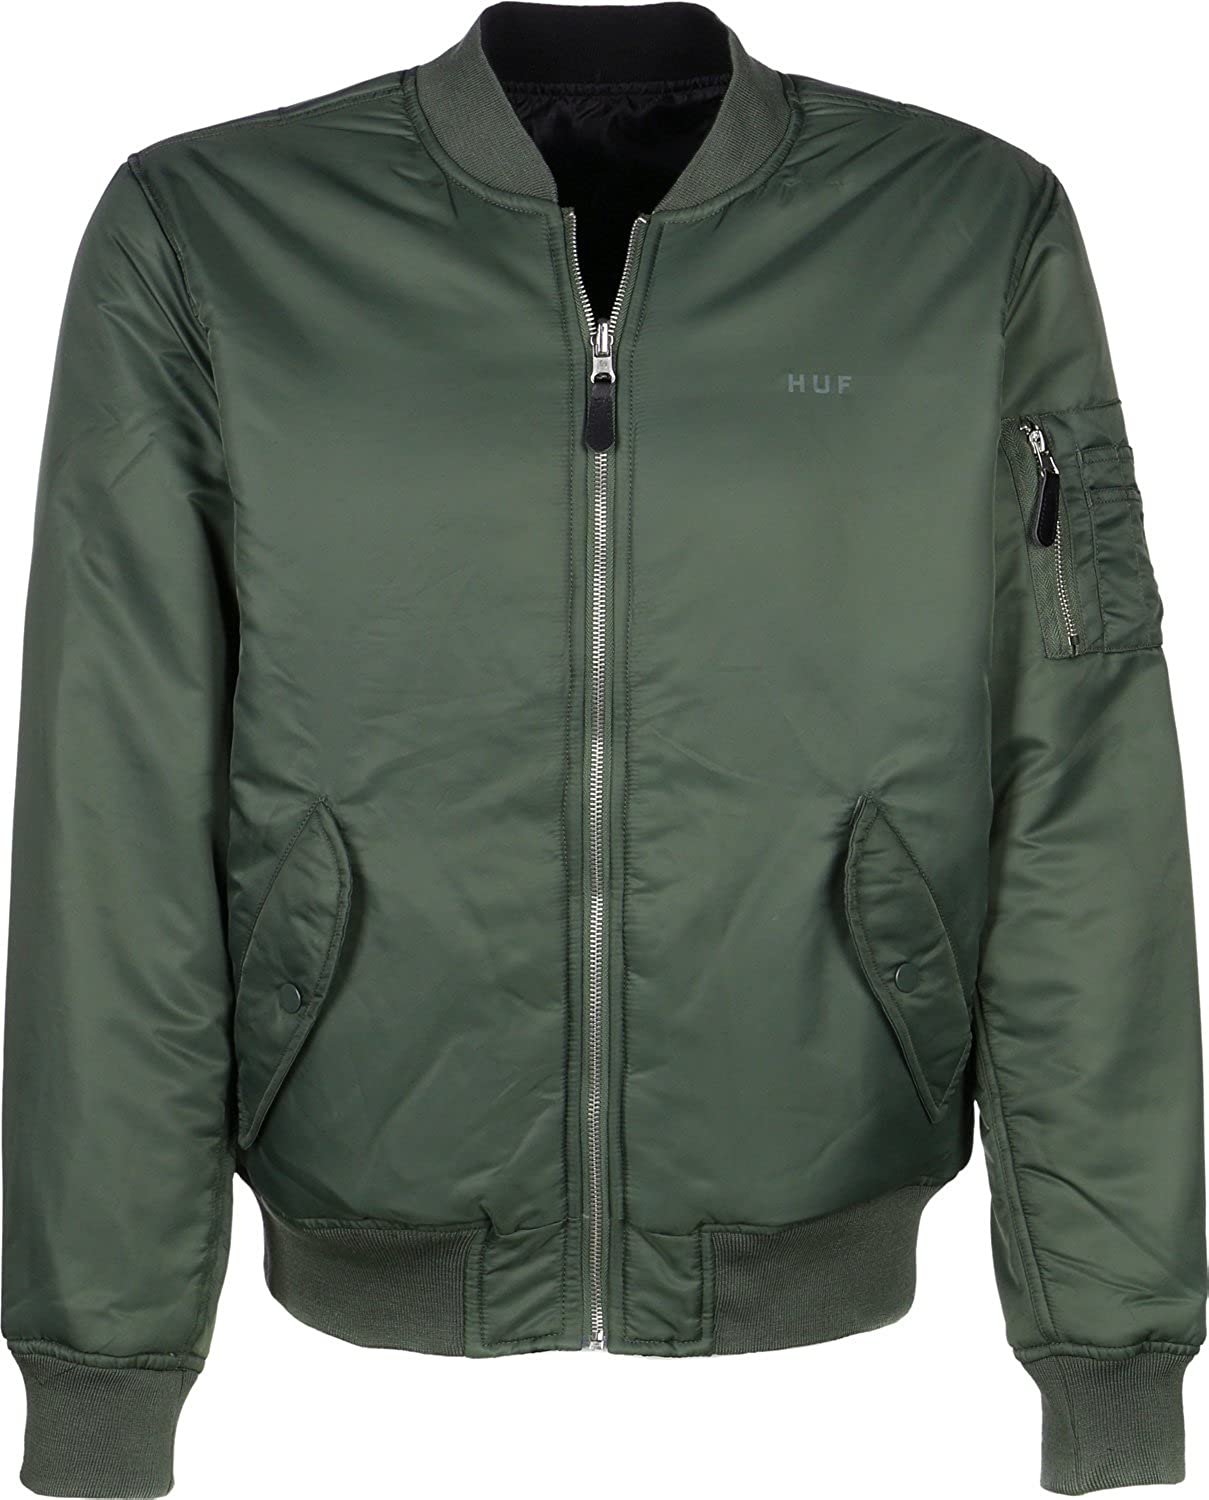 HUF Men's Jacket green Gr眉n